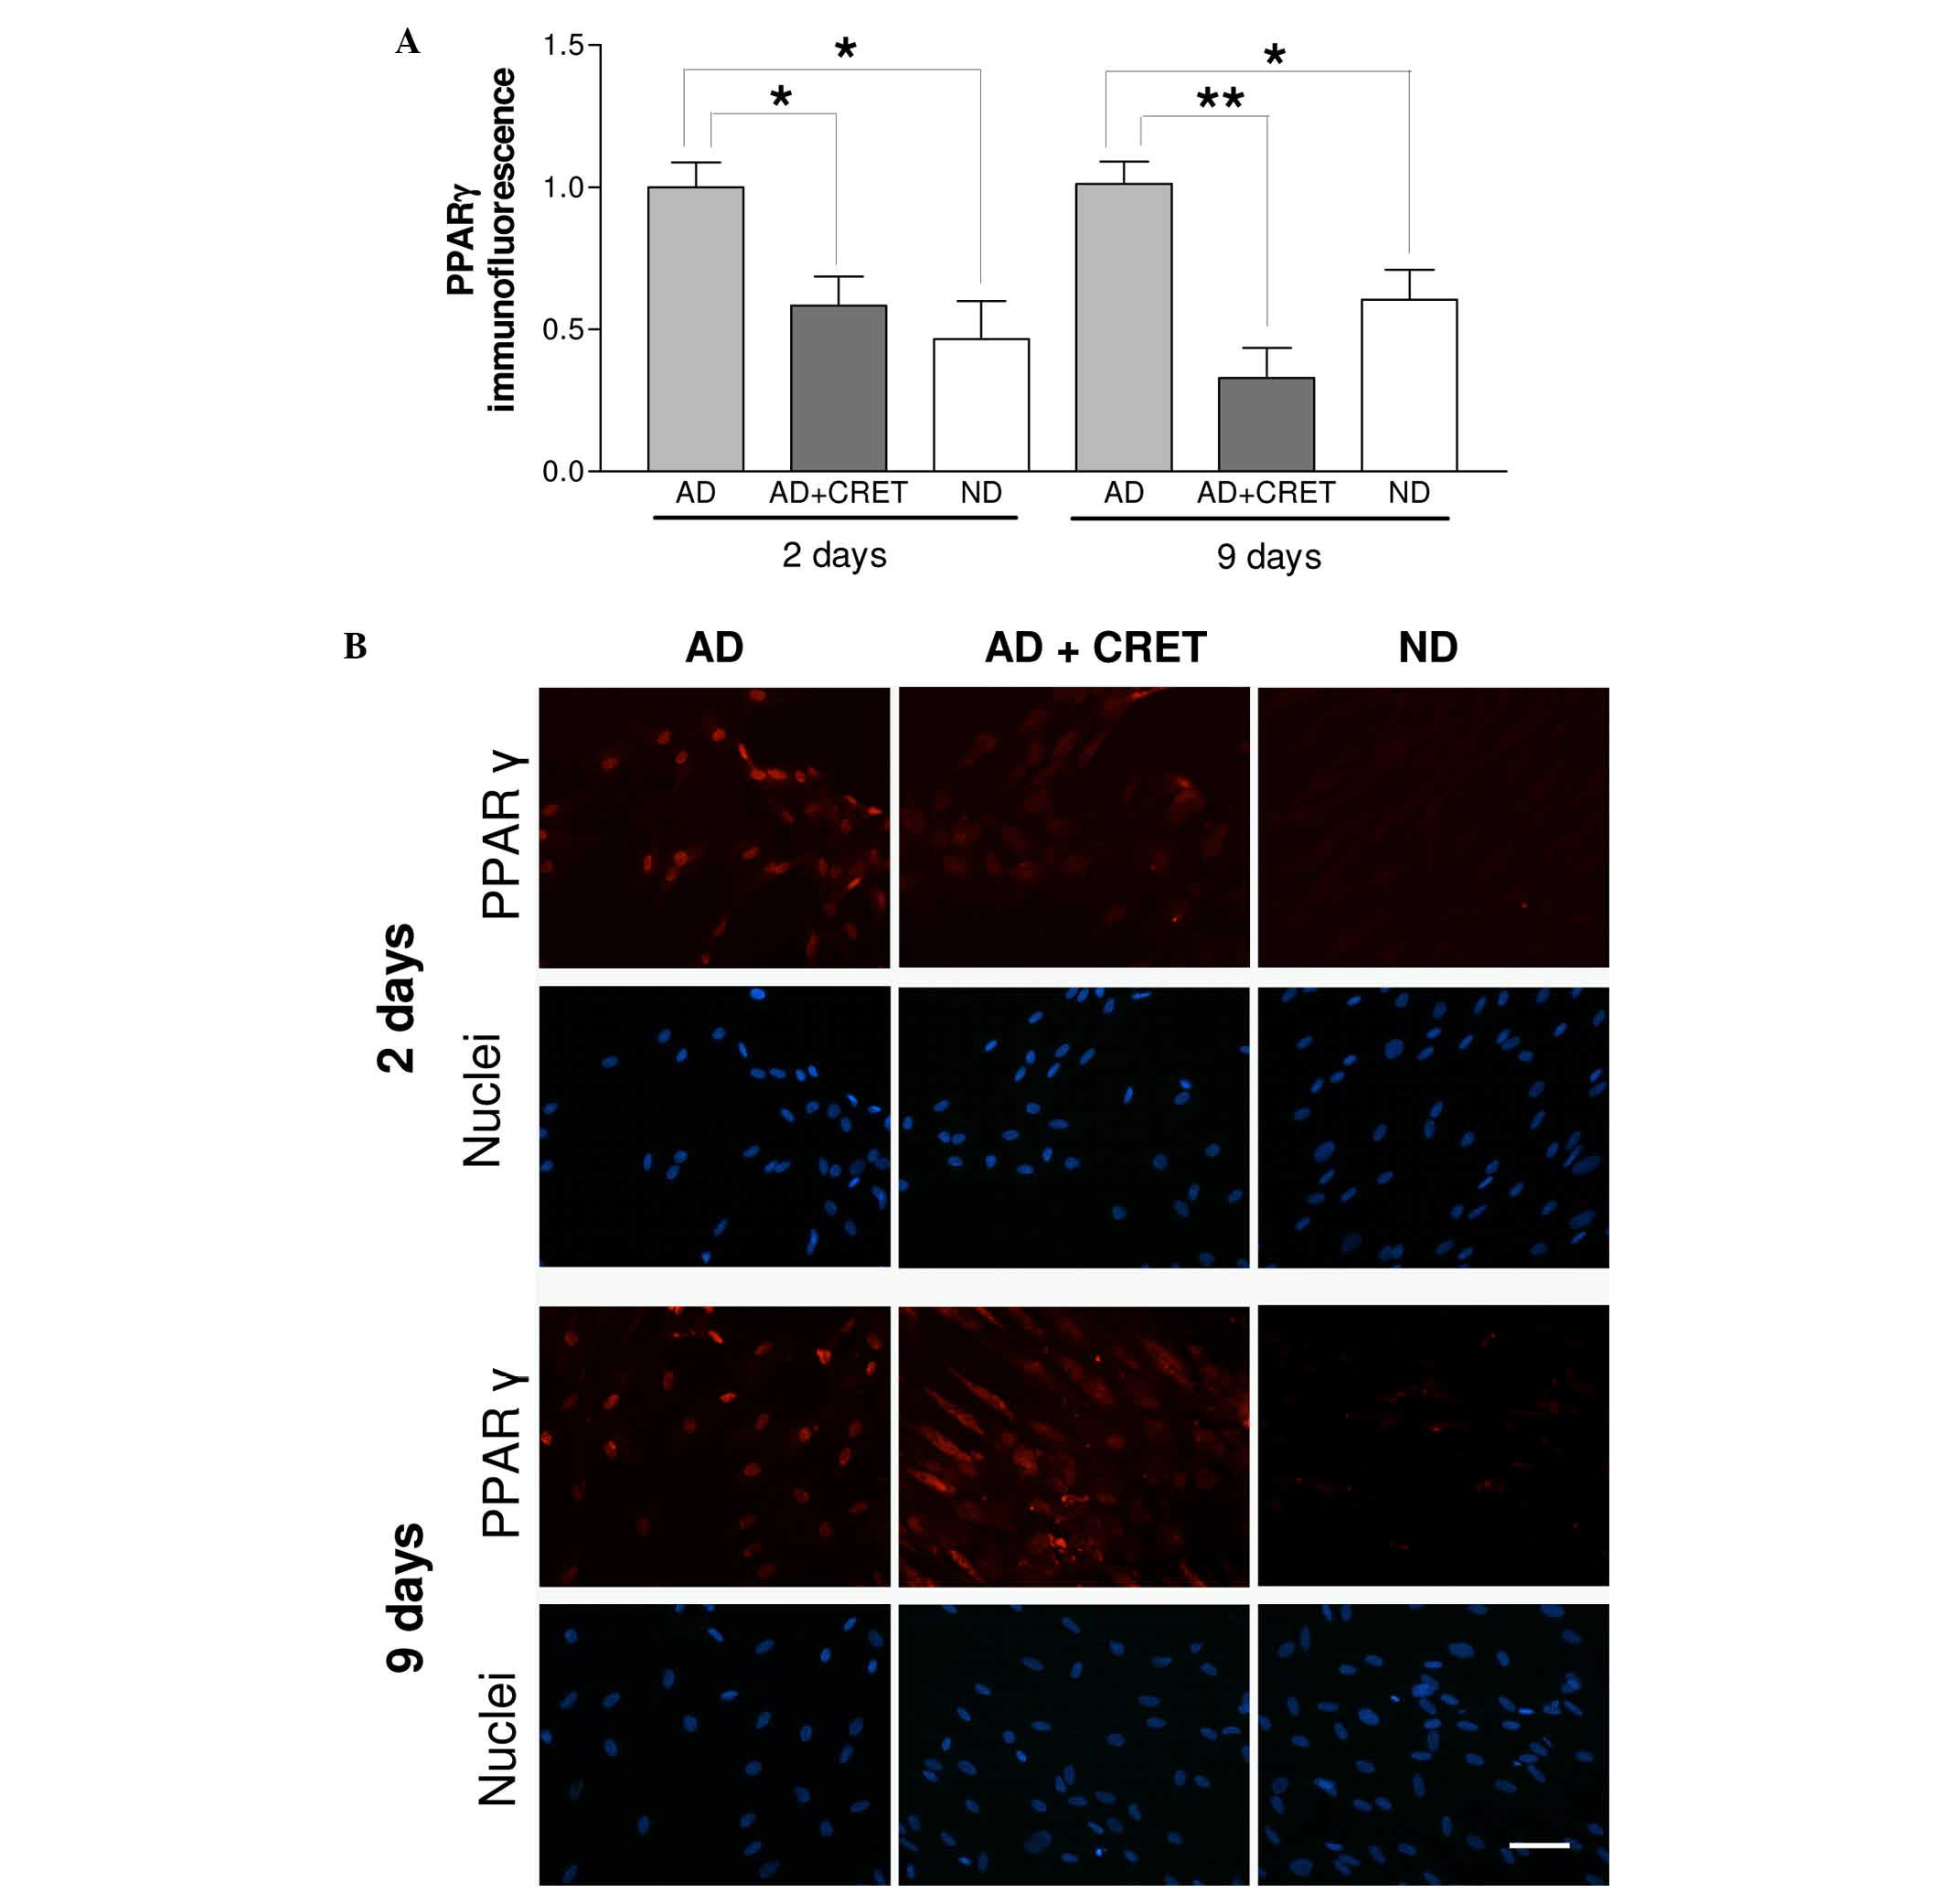 Antiadipogenic effects of subthermal electric stimulation at